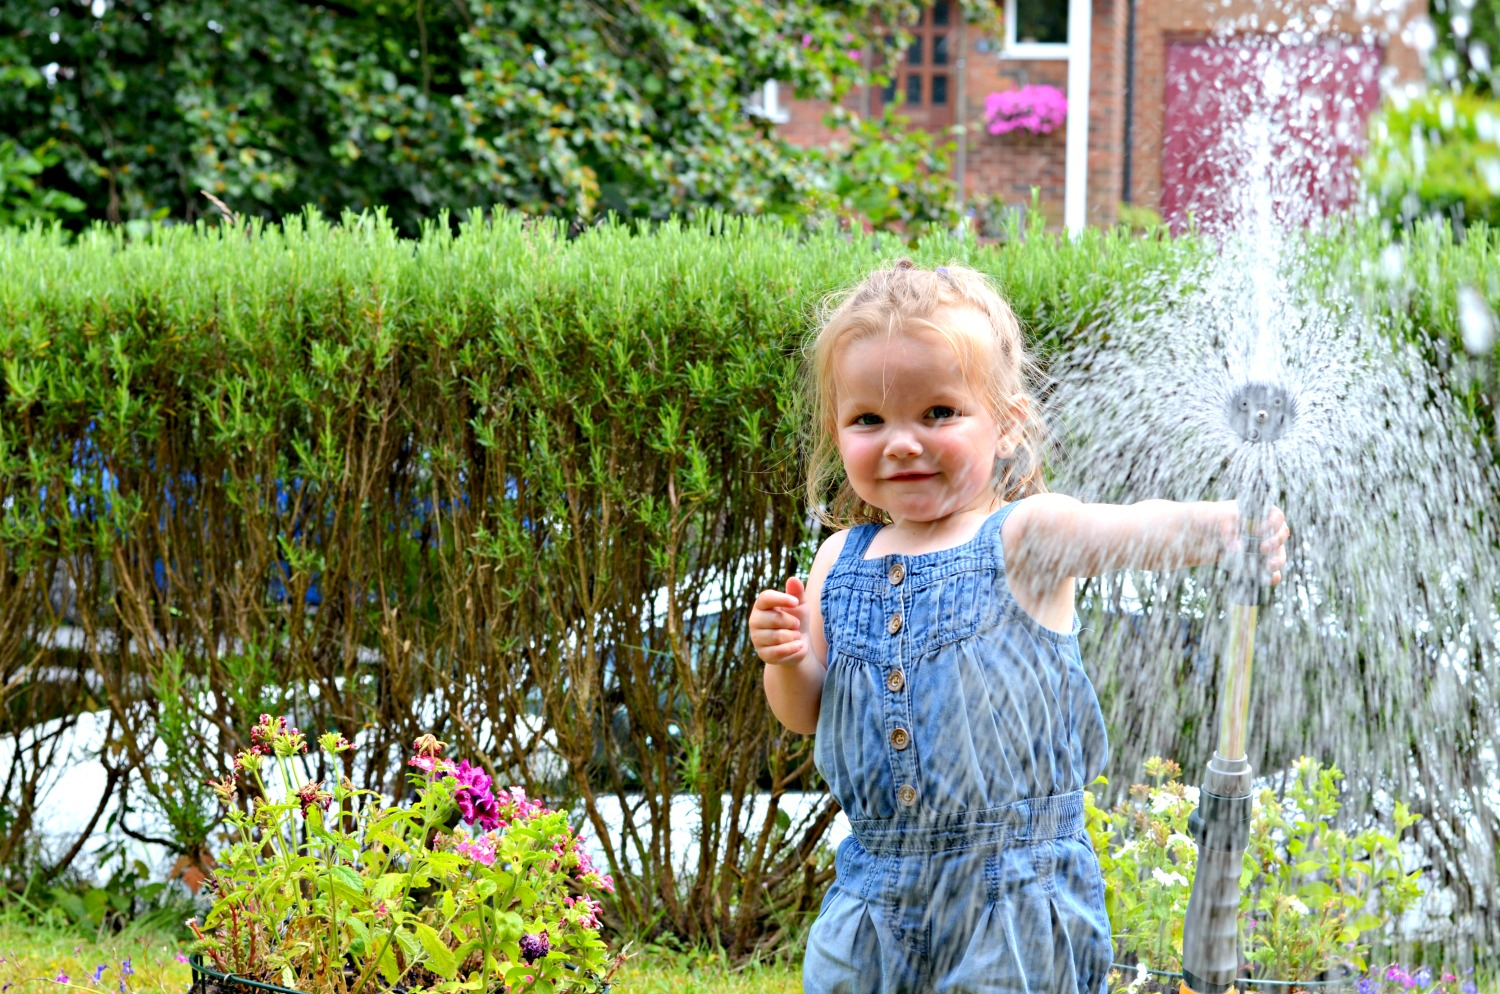 water fun, sprinkler, hose, toddler, third daughter, smile, children, family, garden, adventure